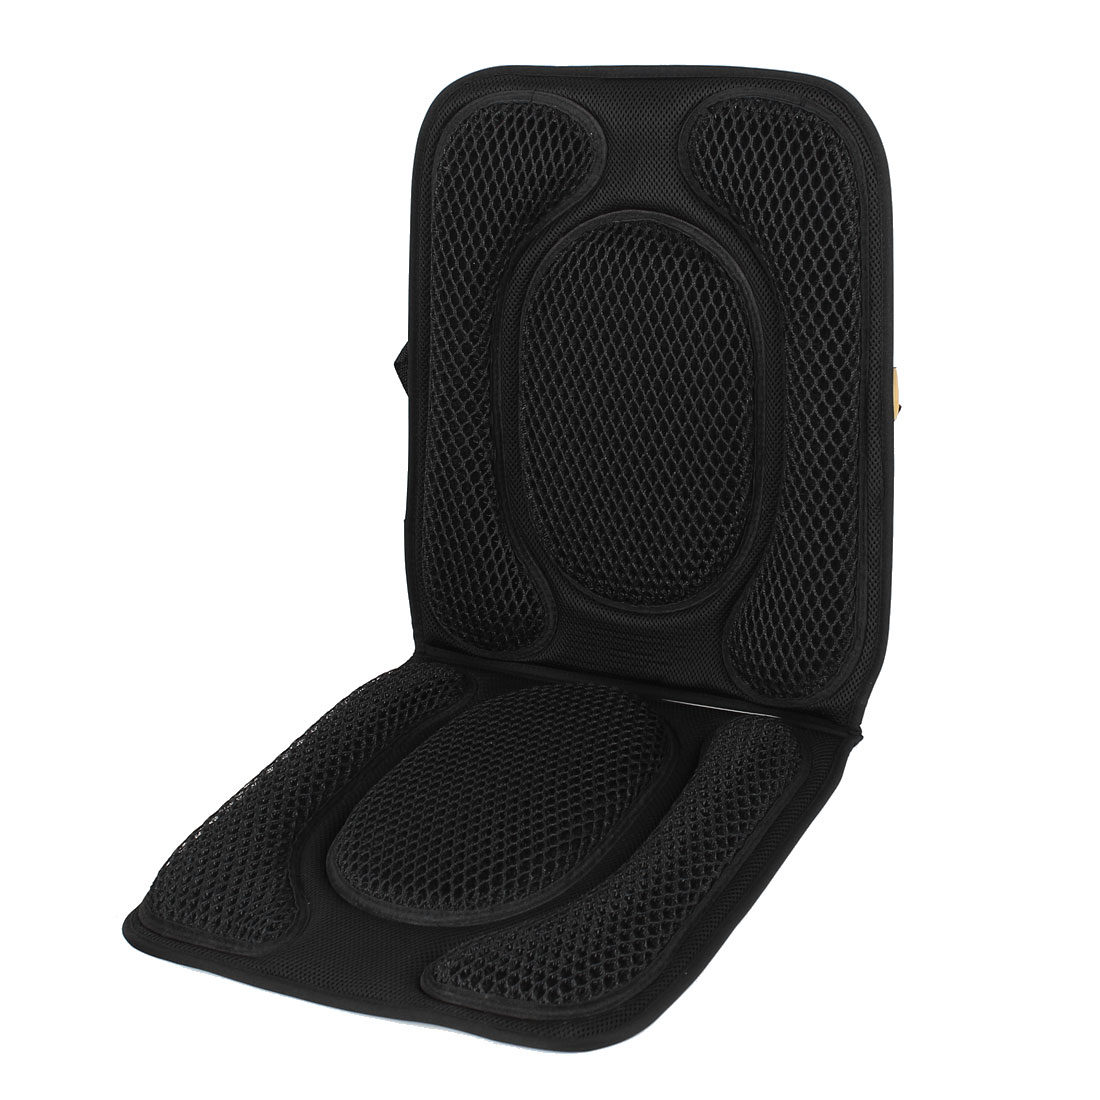 Black Nylon Mesh Design Car Vehicle Seat Cushion Pad Cover Slip on 100cm x 40cm